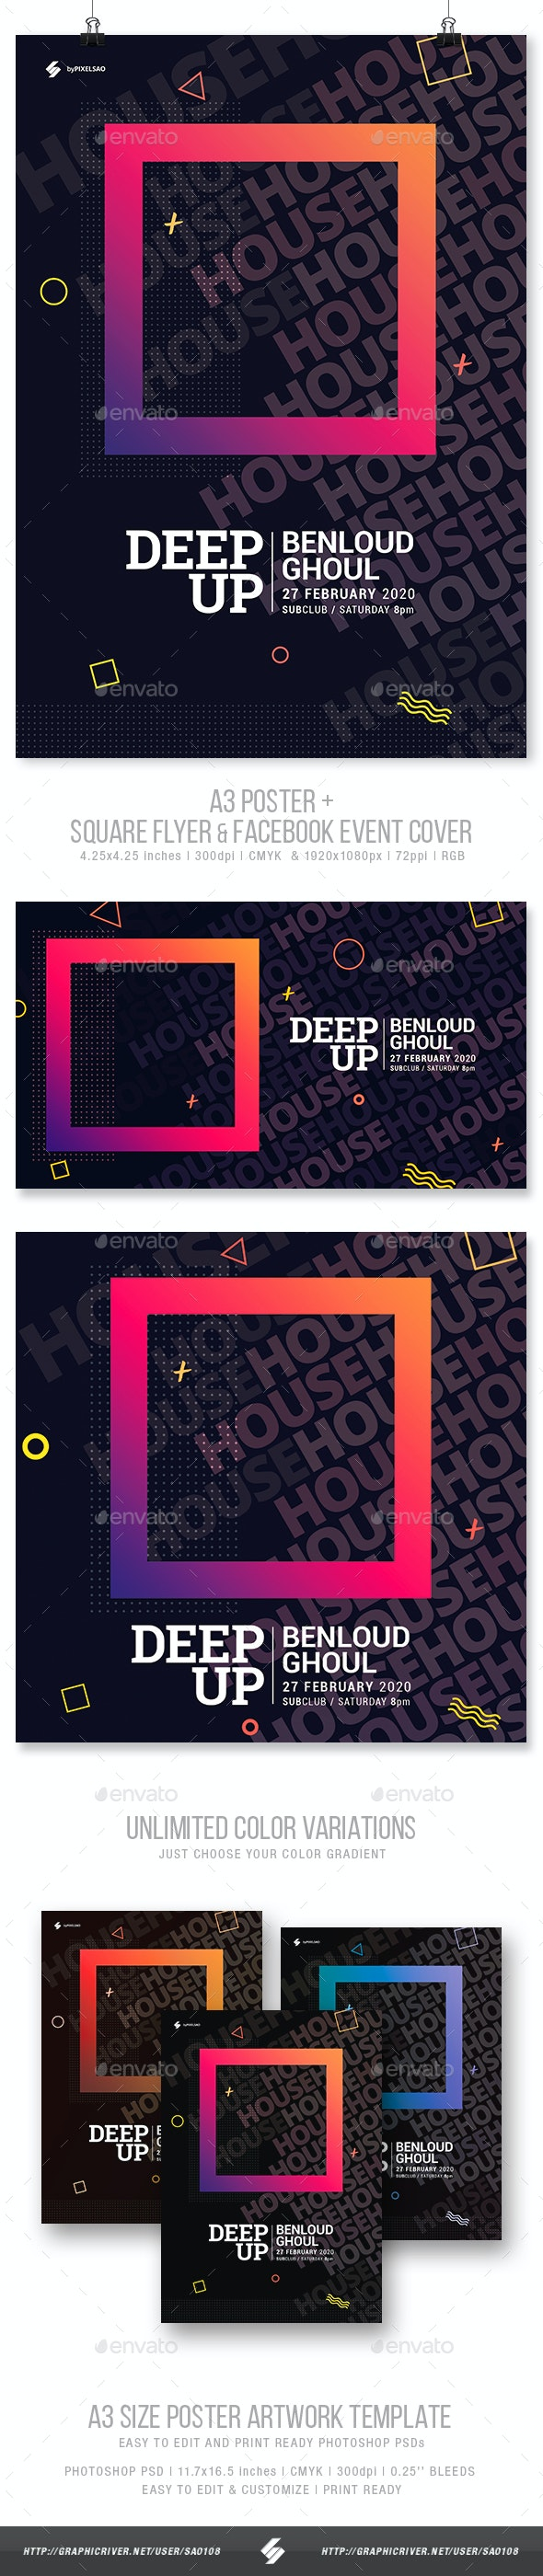 Deep Up - Club Party Flyer / Poster Artwork Template A3 - Clubs & Parties Events